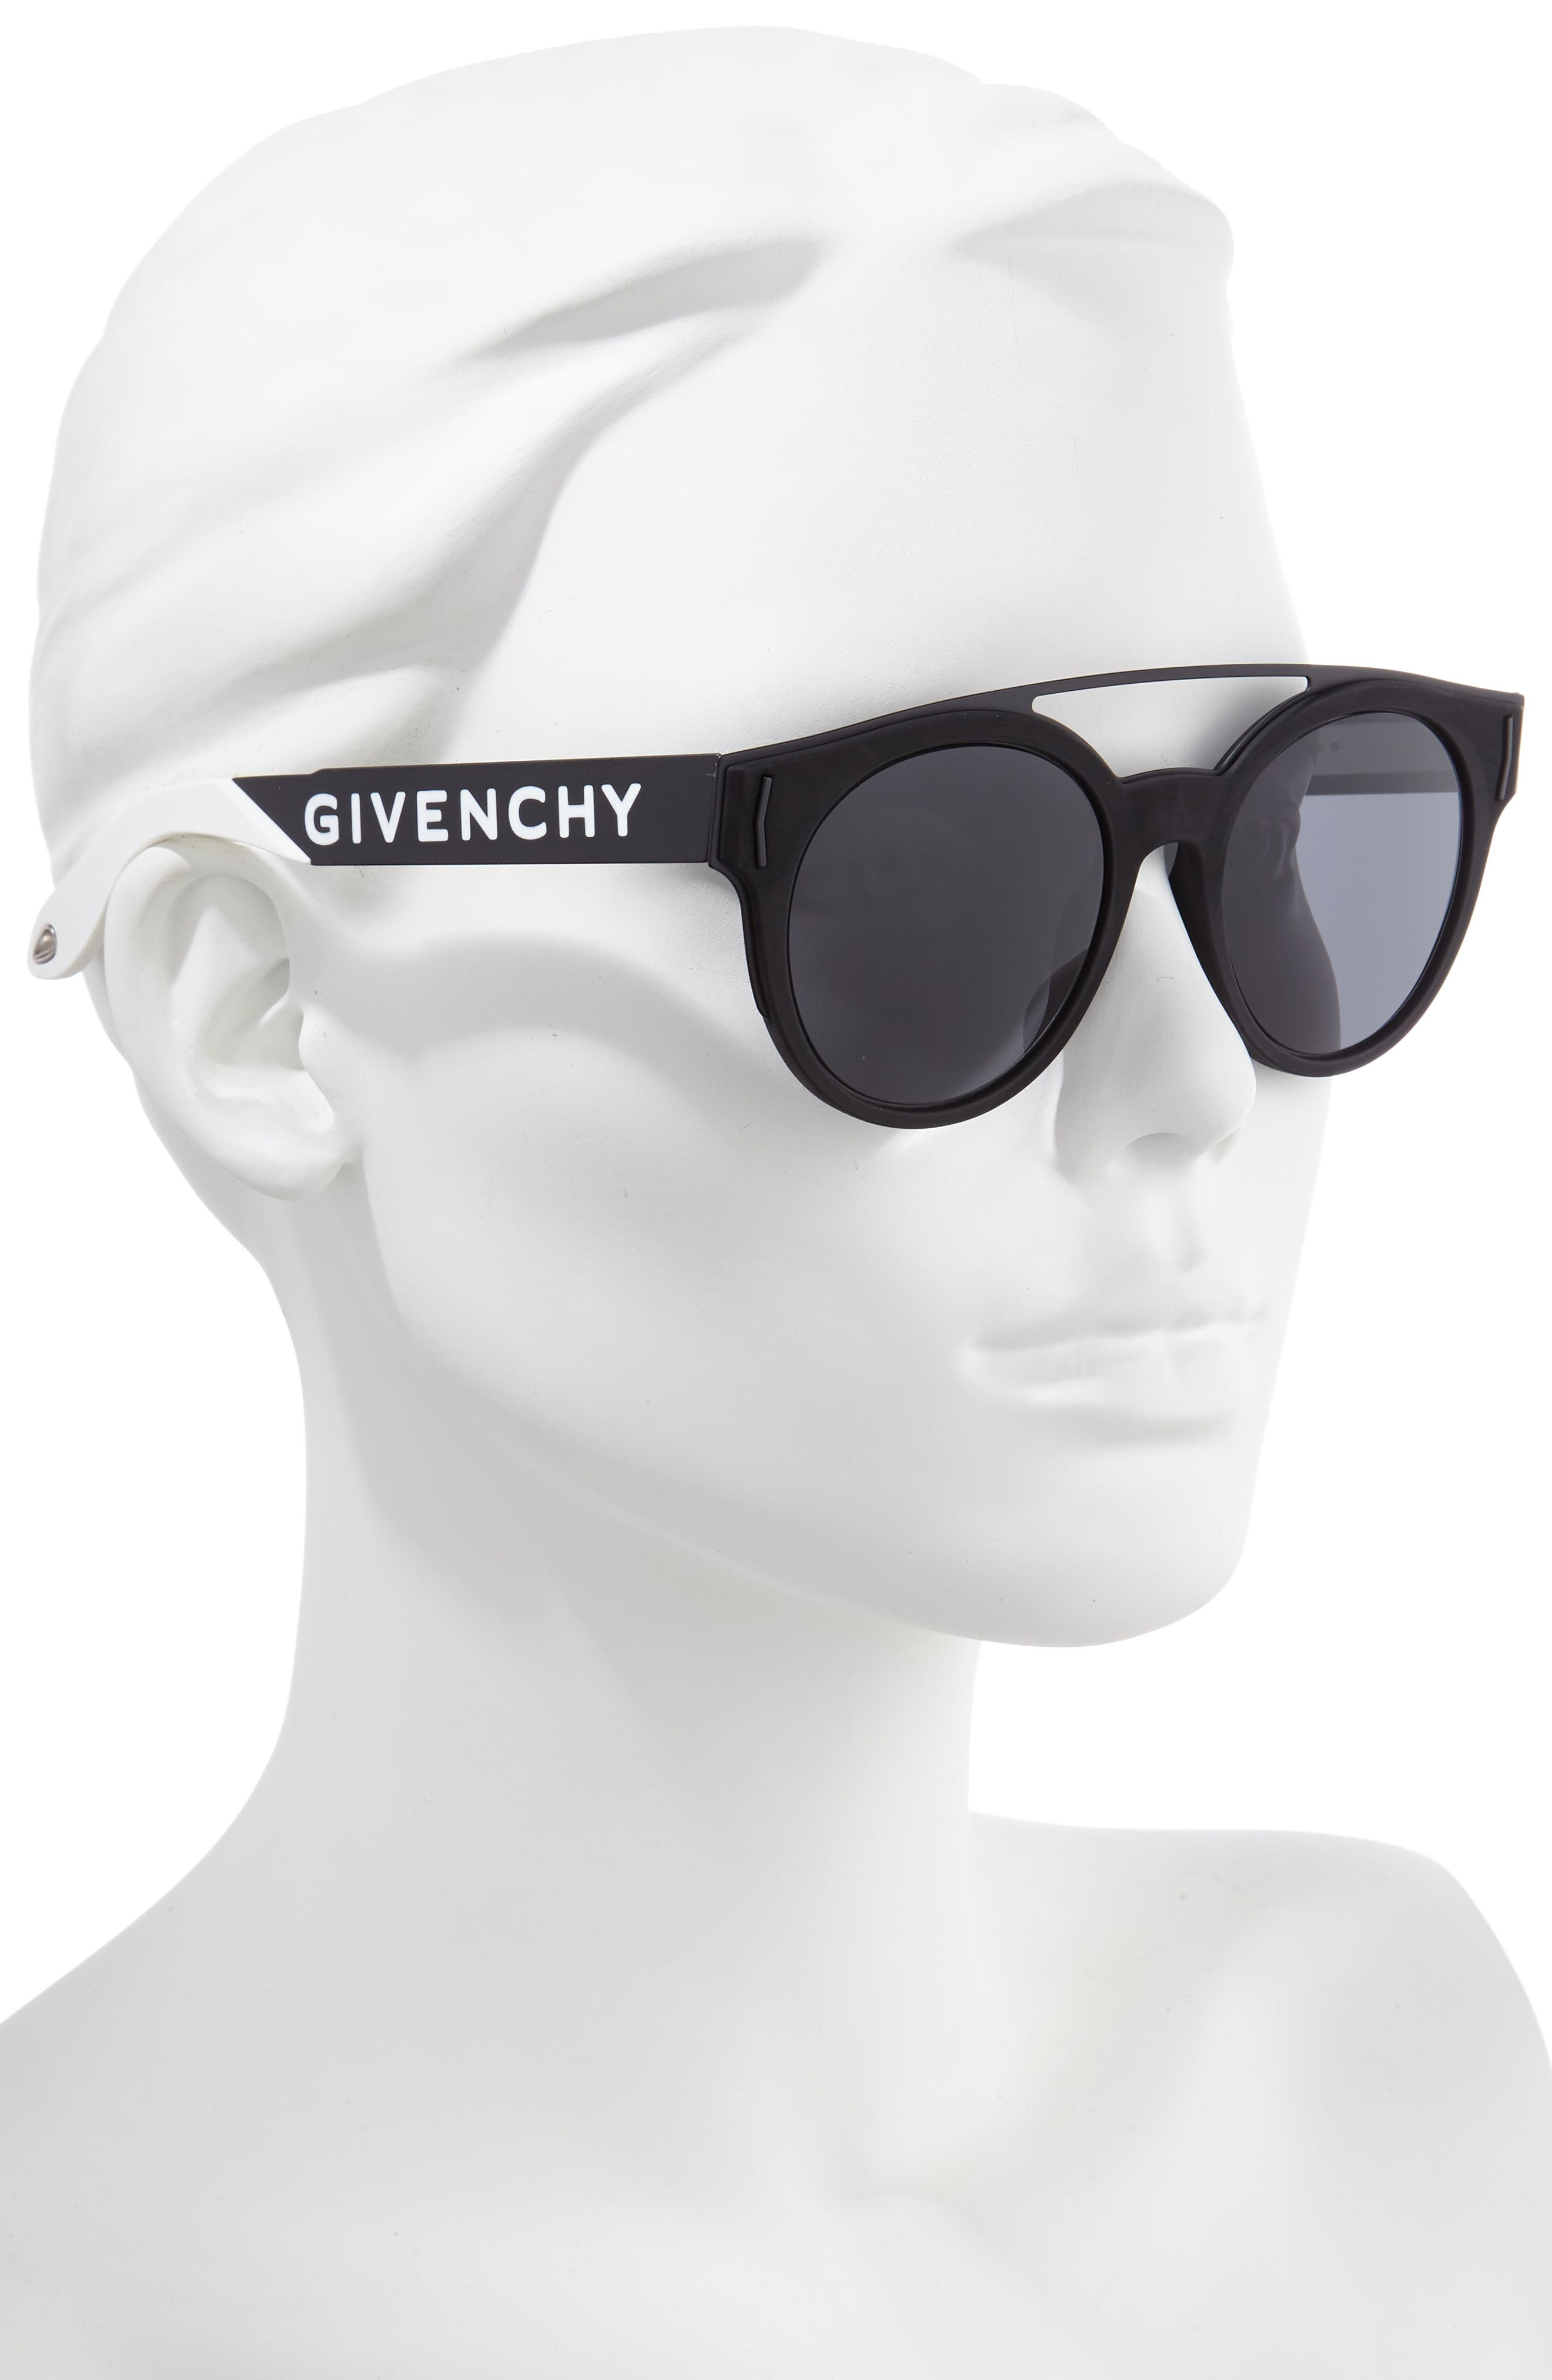 40d868be9a974 Givenchy Women s Sunglasses Sunglasses and Accessories